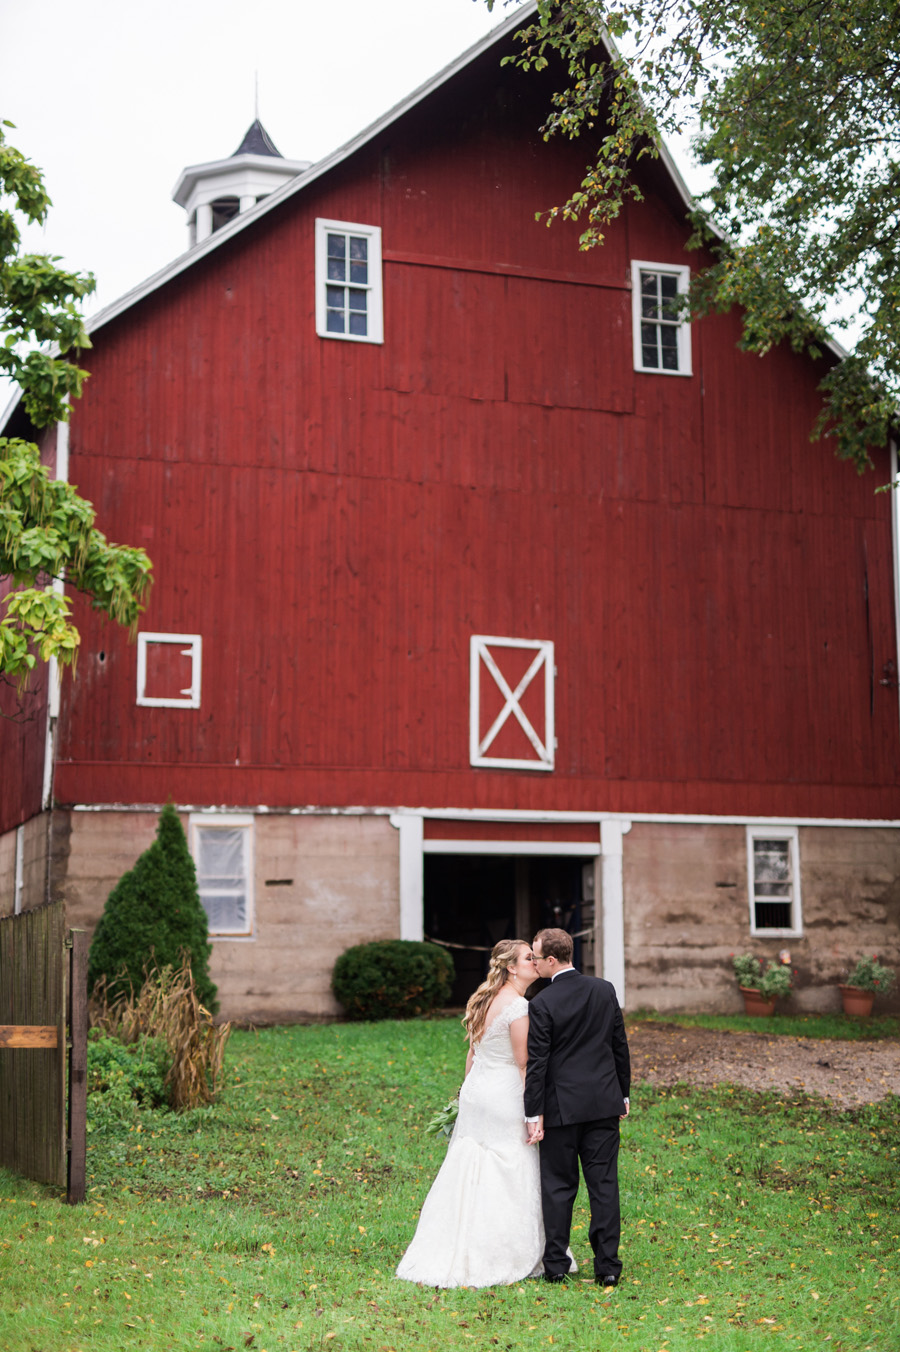 Bride and groom kiss in front of red barn.